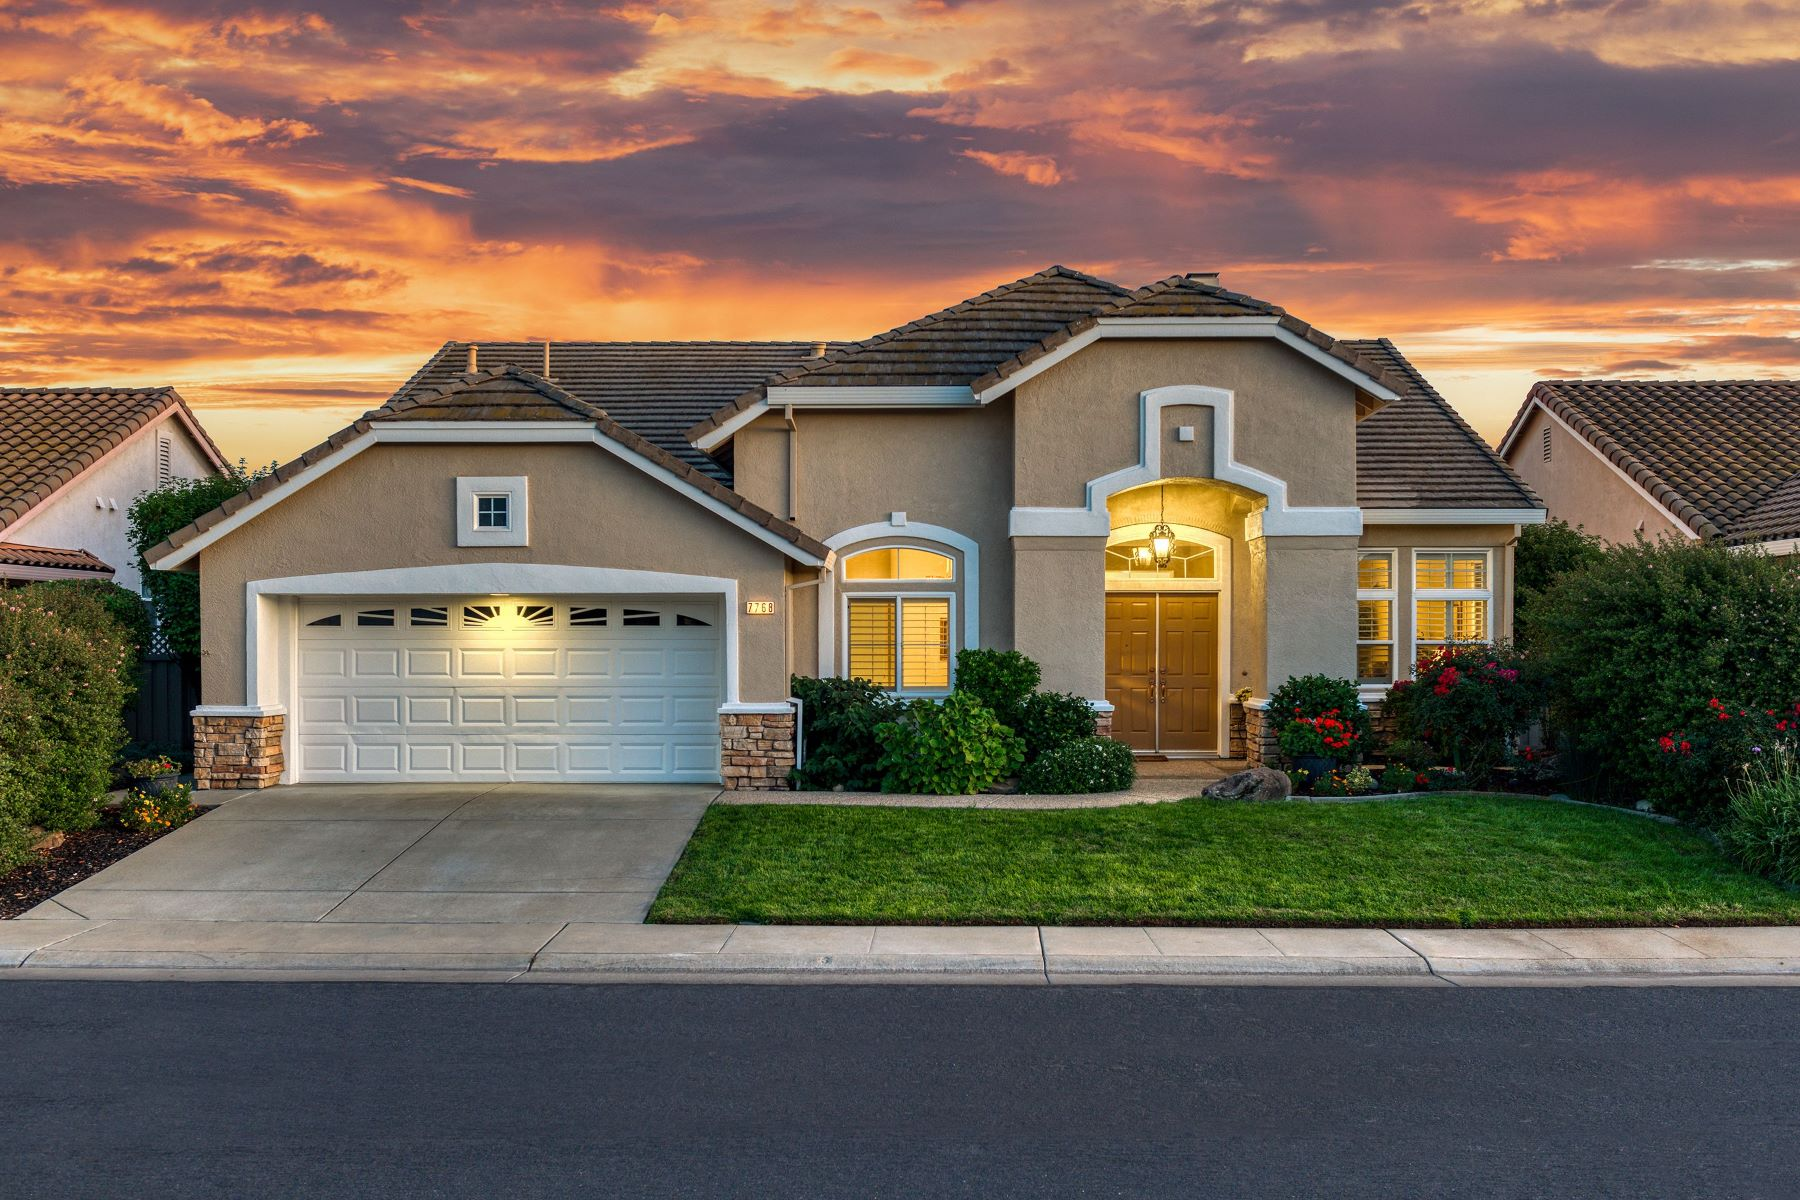 Other Residential Homes for Active at 7768 Rosestone, Roseville, CA, 95747 7768 Rosestone Roseville, California 95747 United States